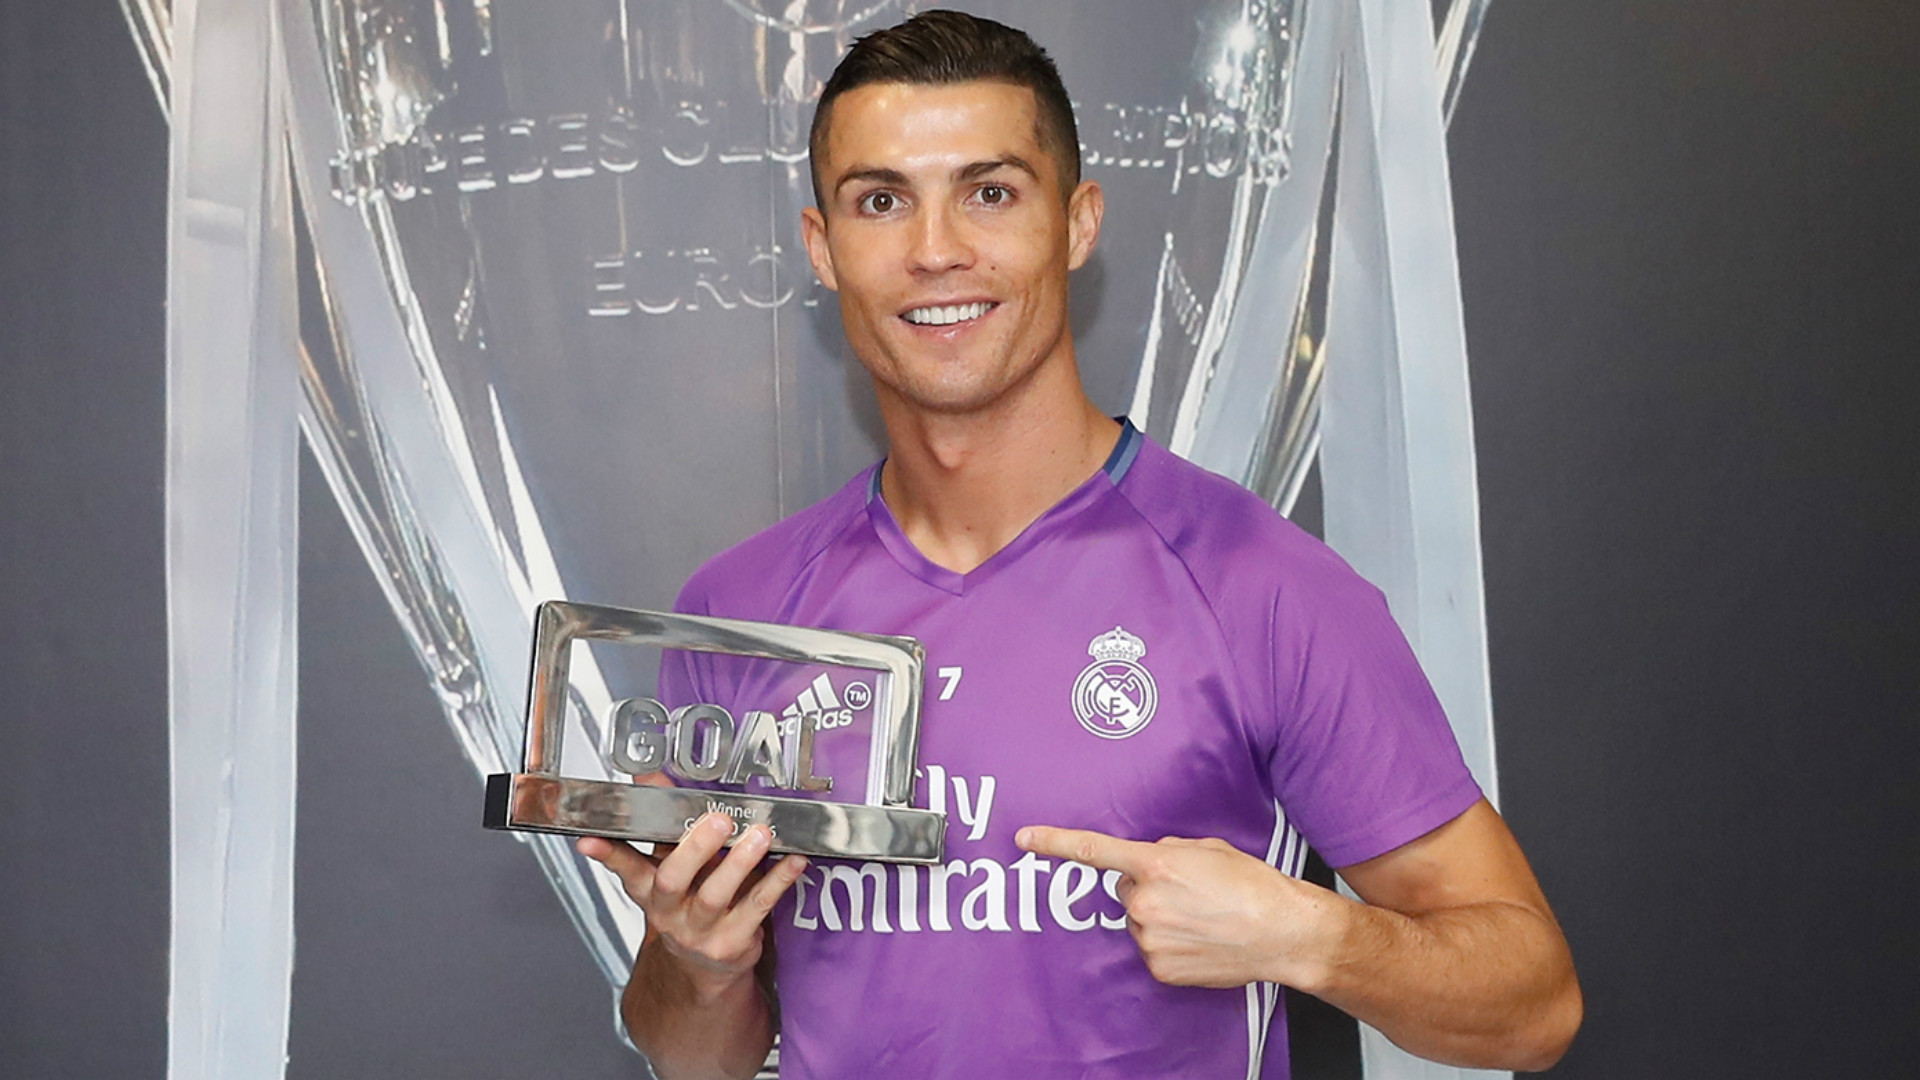 Ronaldo, Messi & the winners of the world's top individual awards from past 12 months